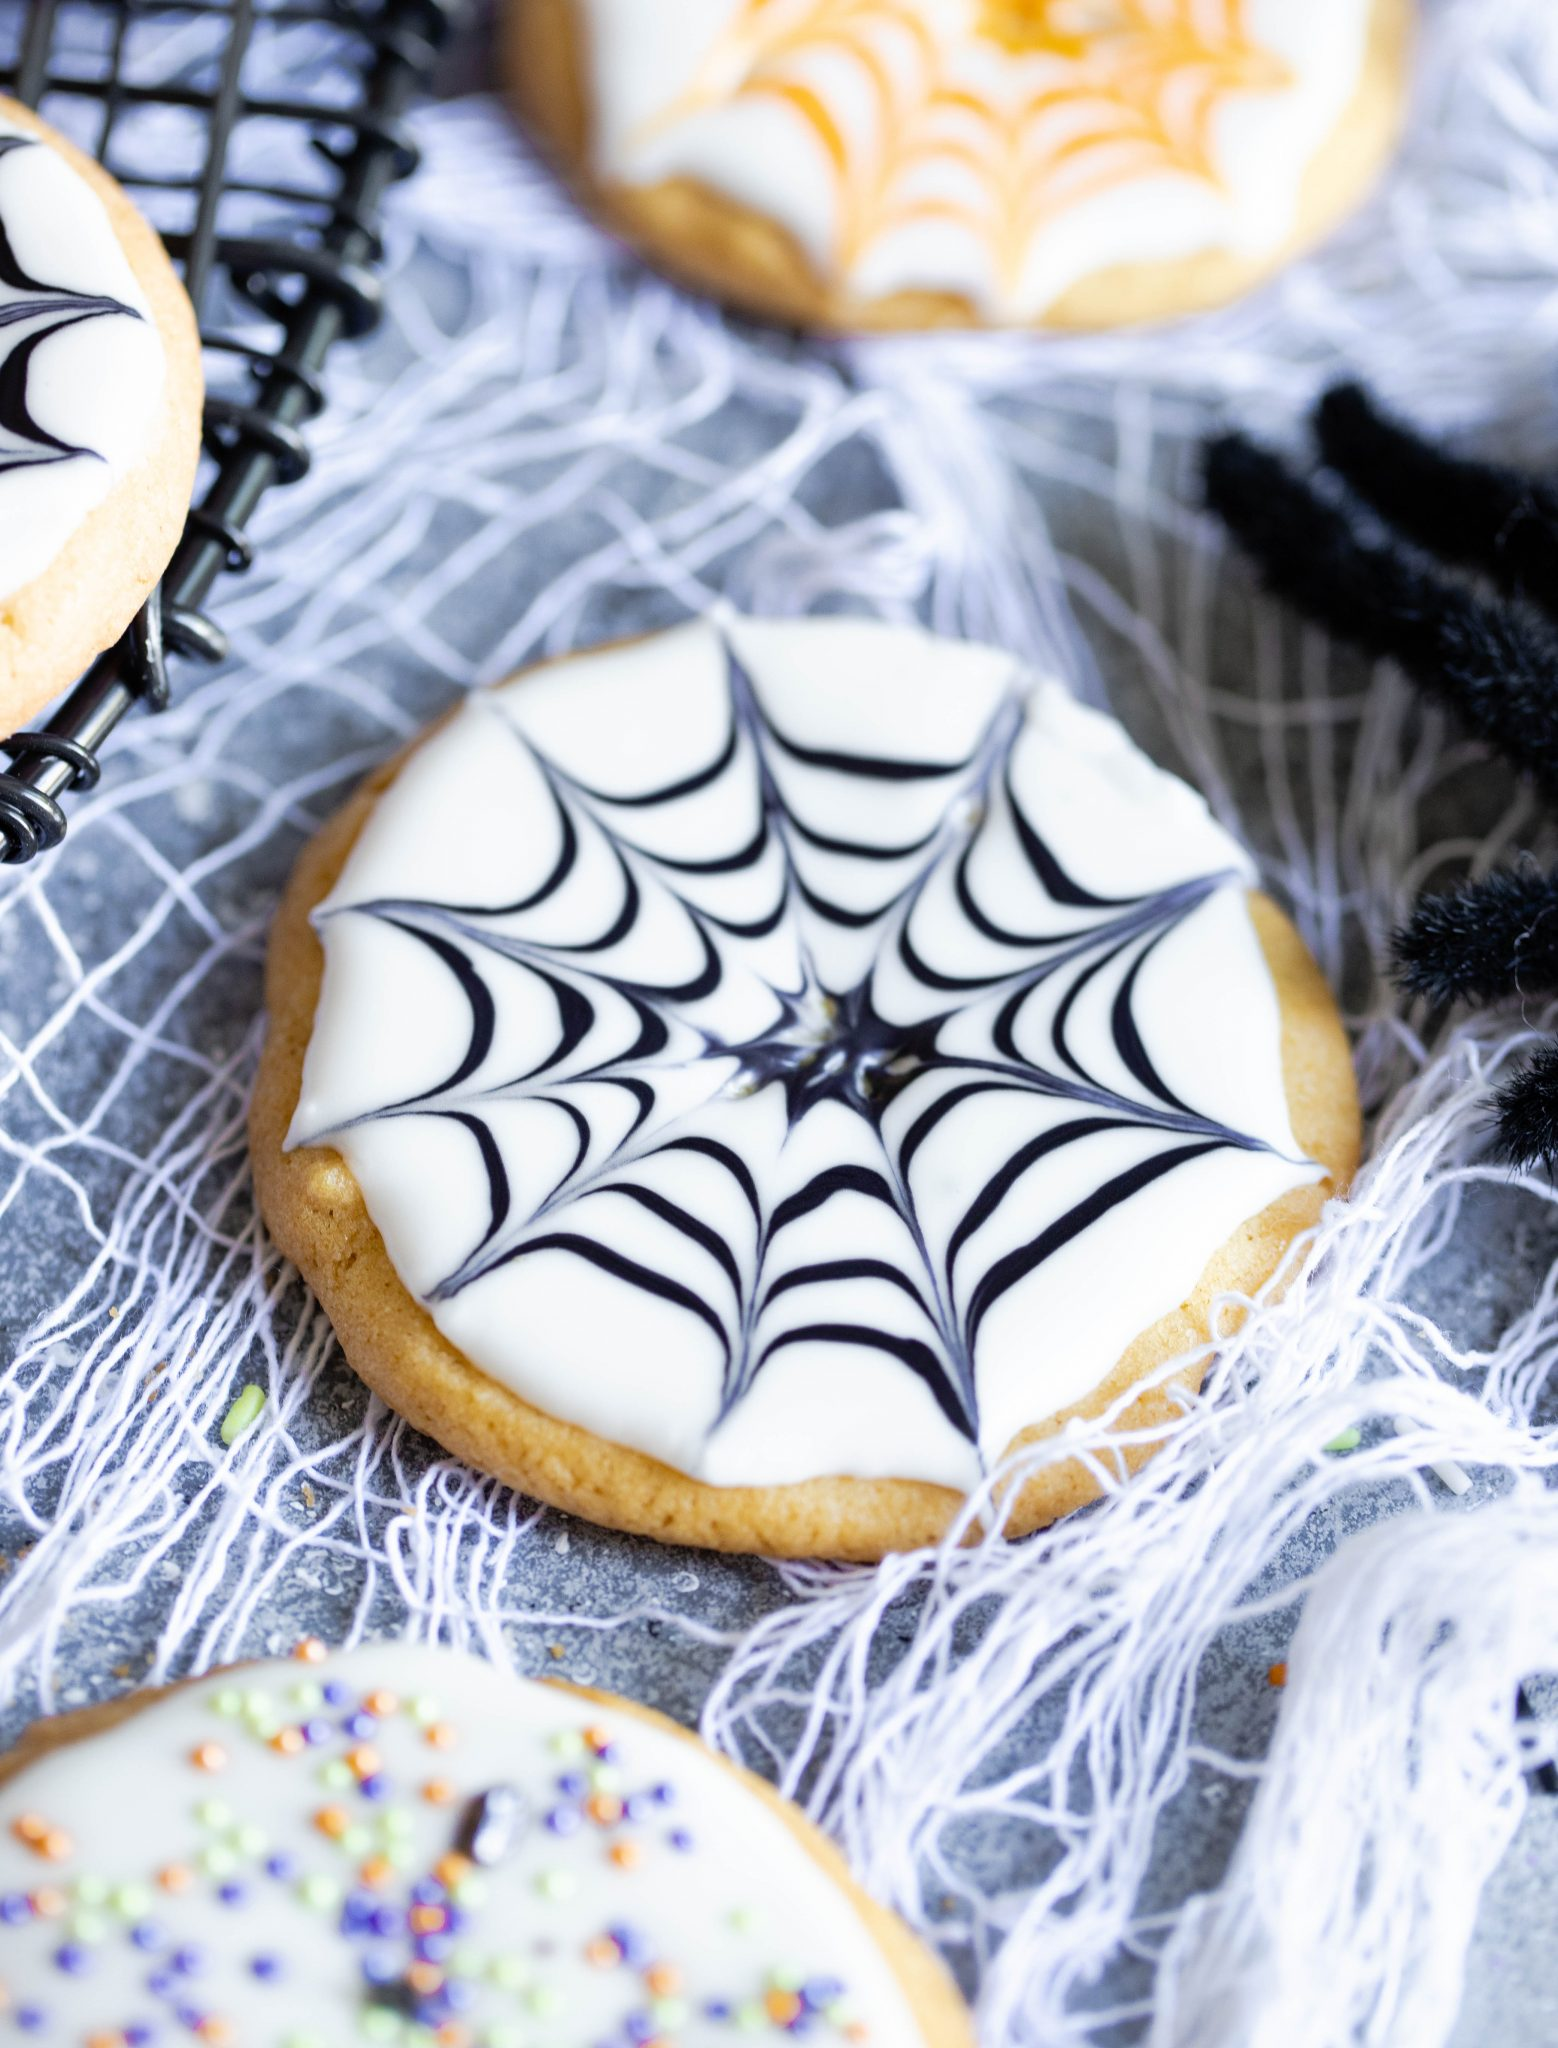 sugar cookie with white icing and a black spider web piped on